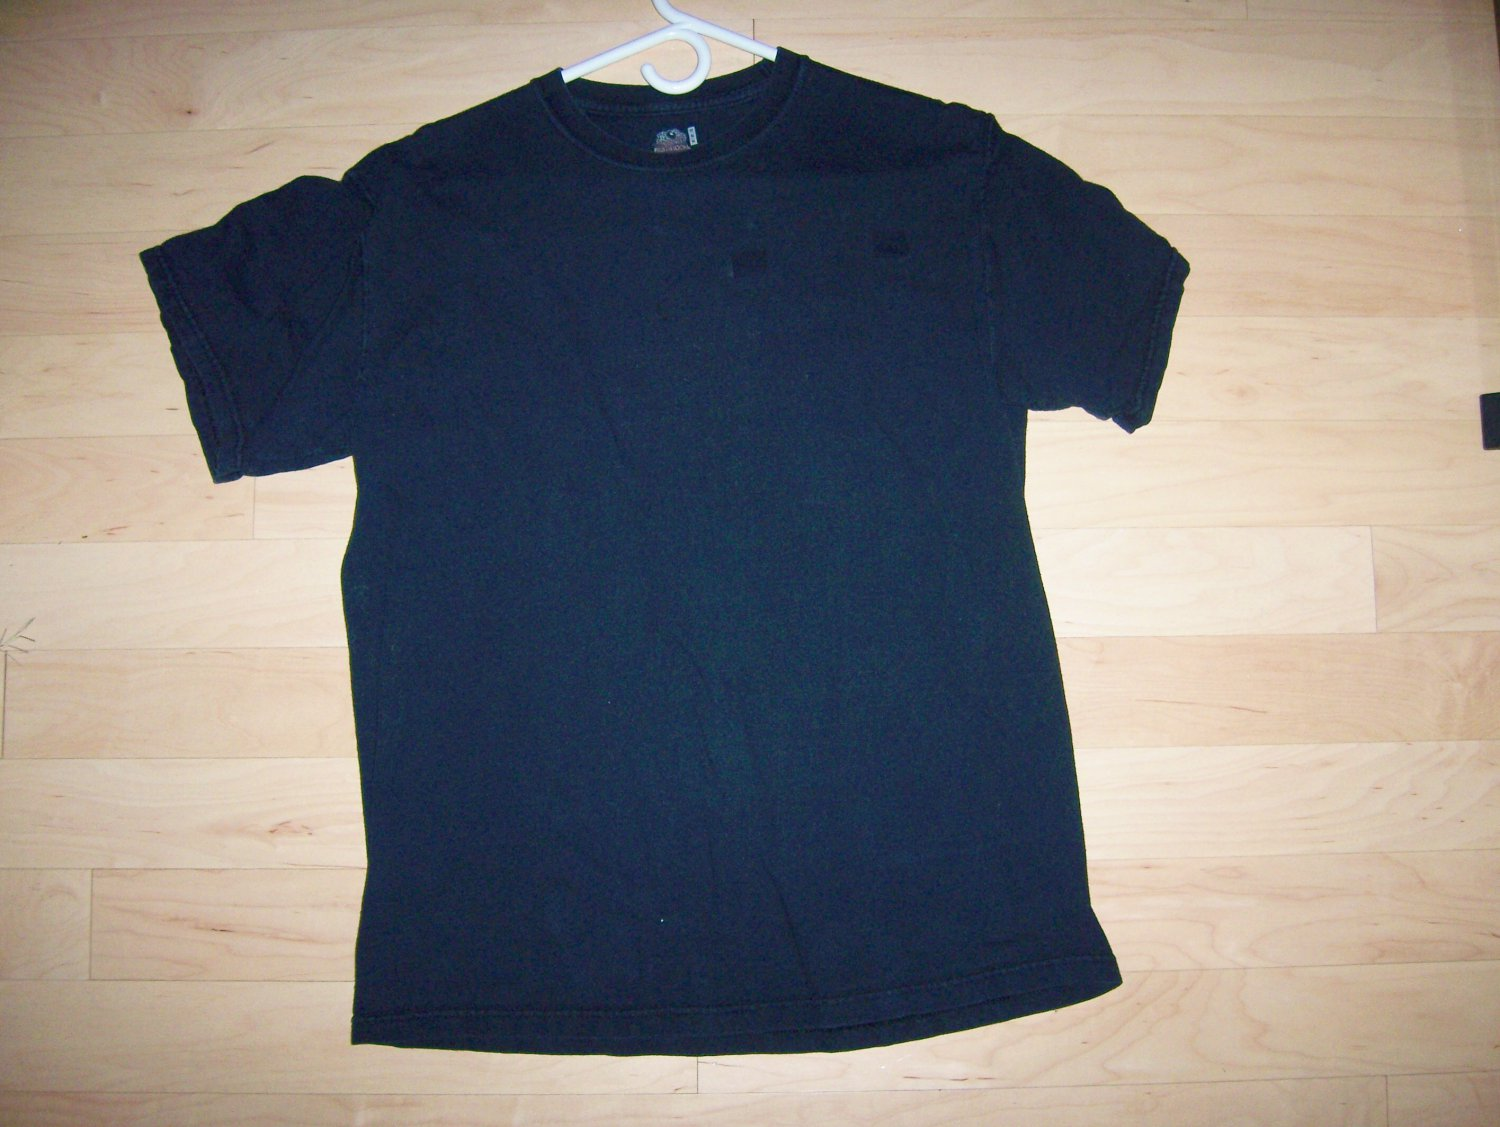 T Shirt Black Medium Unisex Medium By Fruit Of The Loom BNK1410